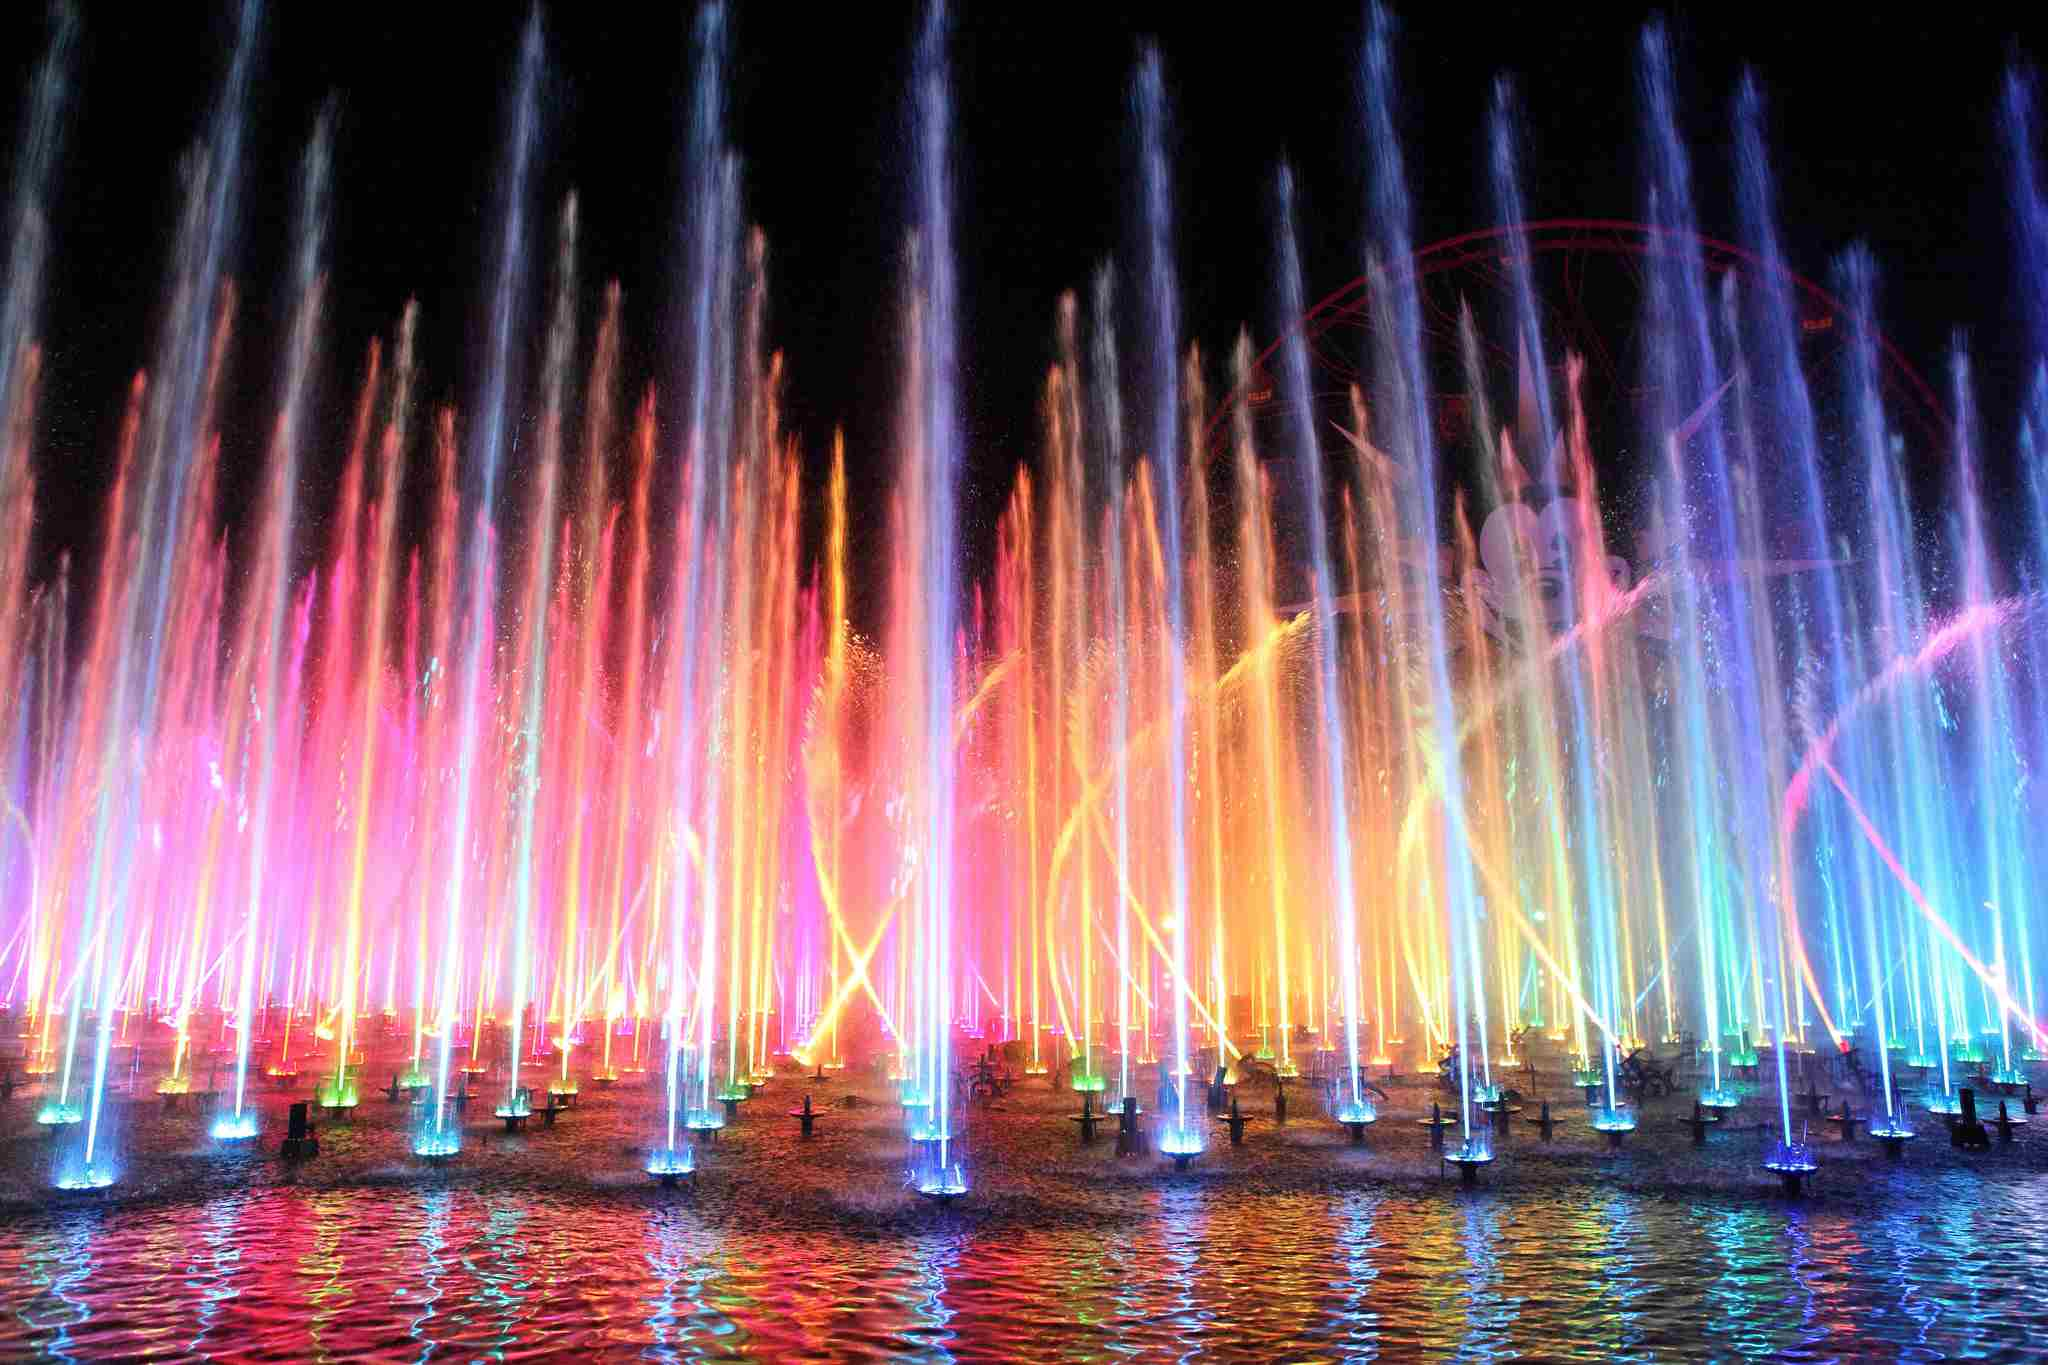 Fountains in World of Color